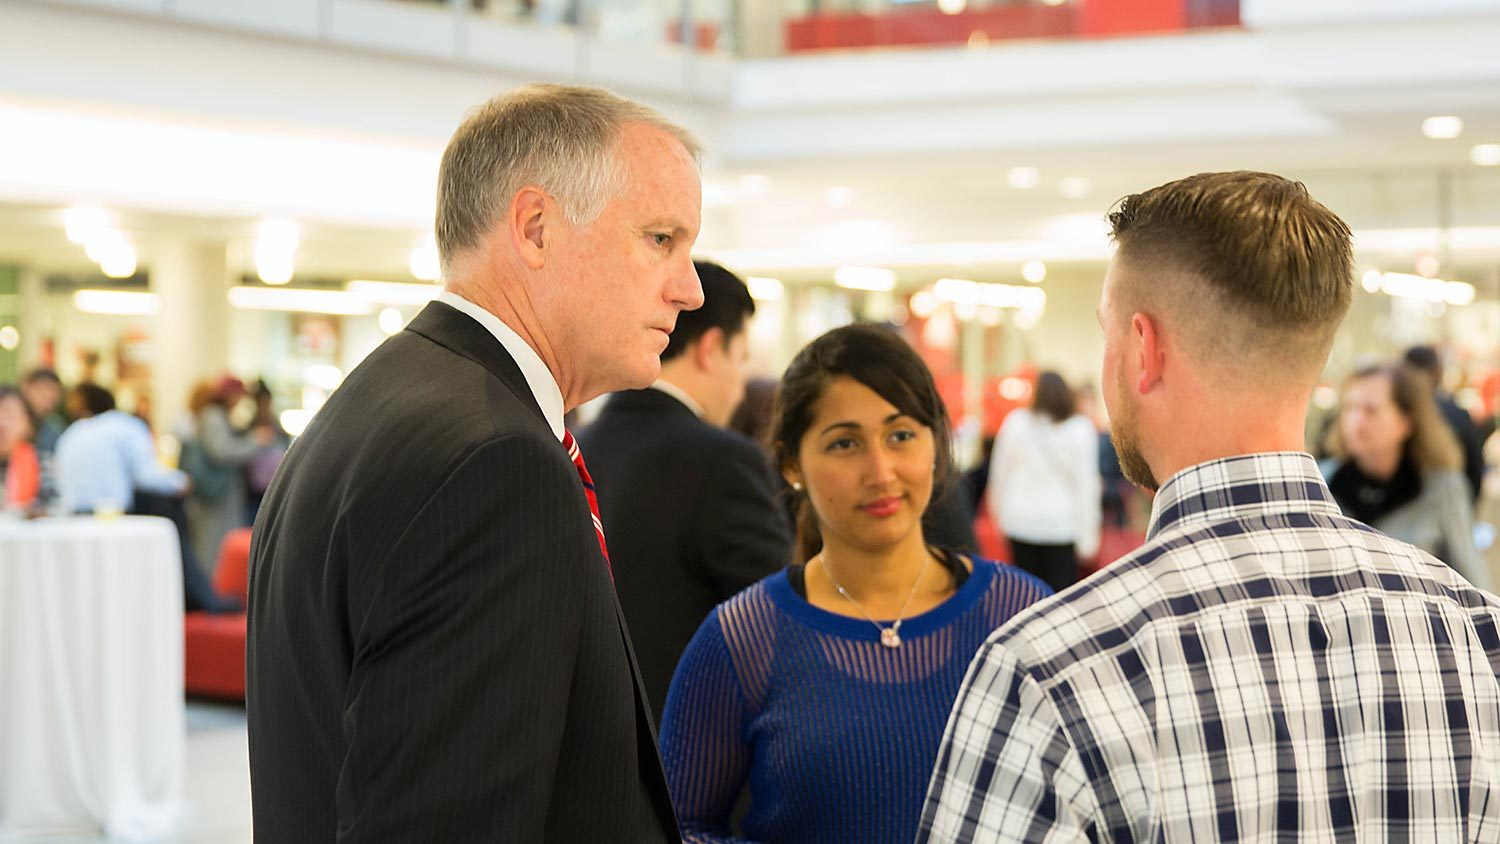 NC State administrator talks with students